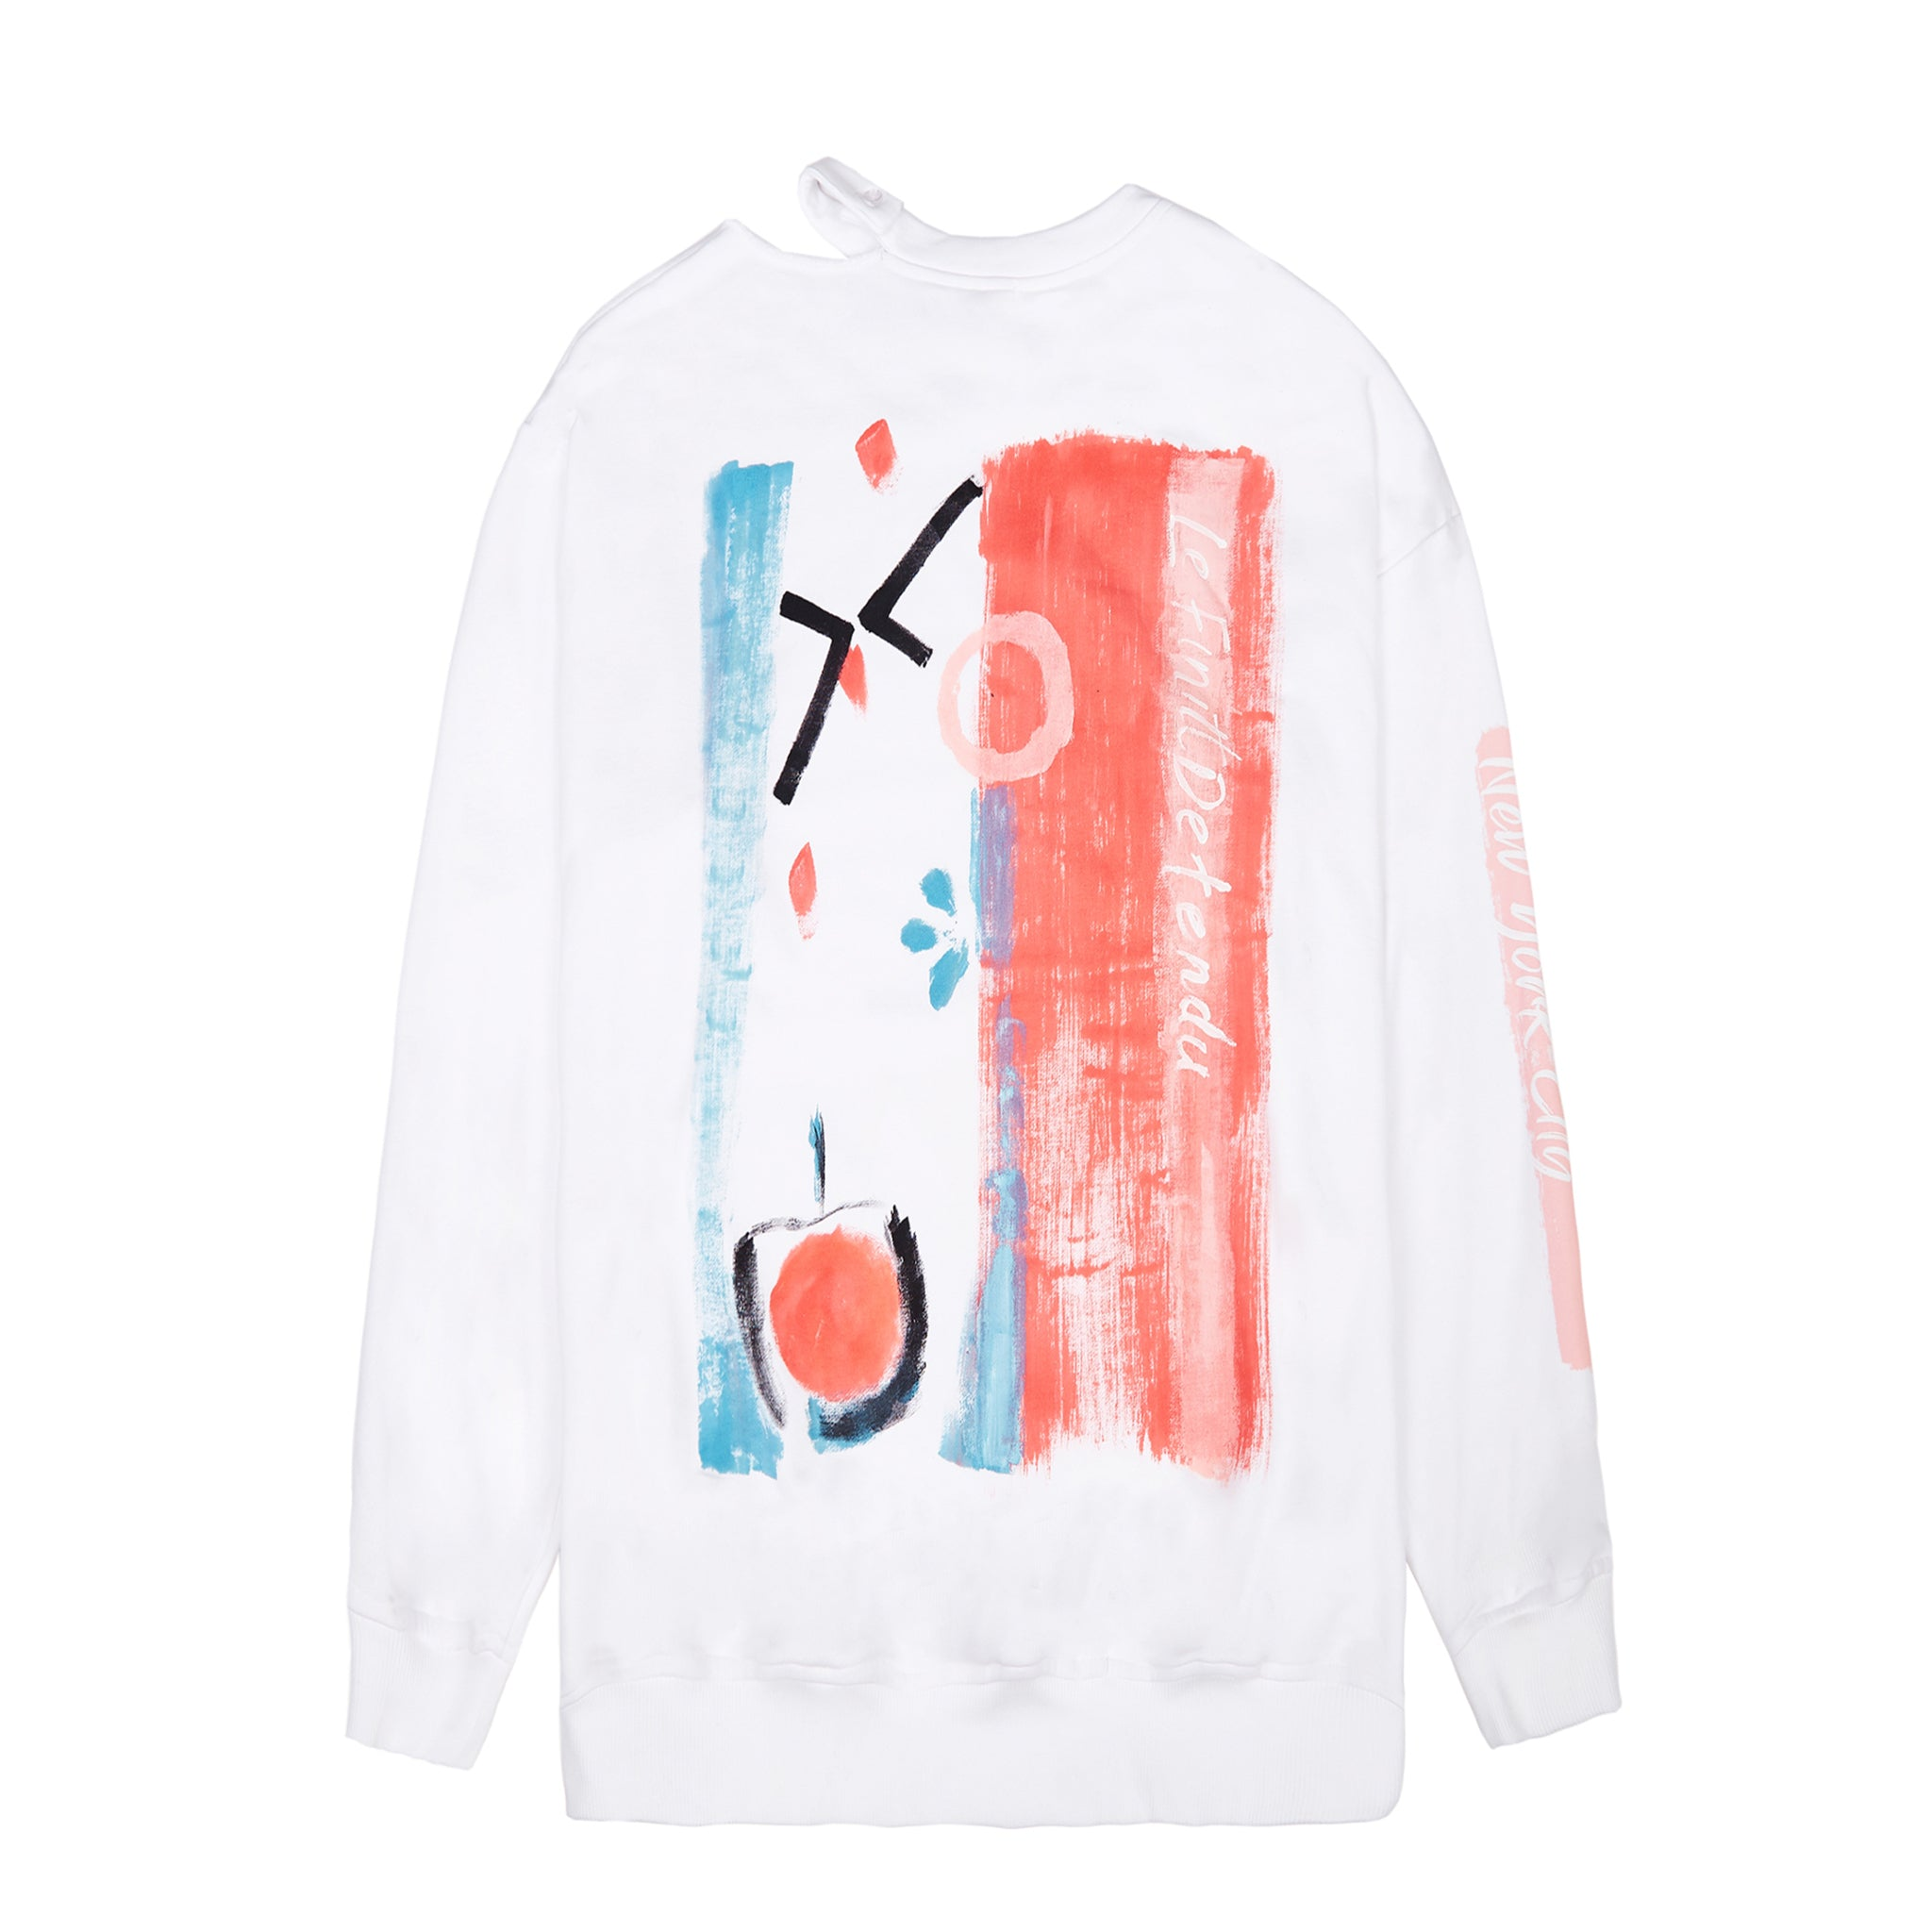 Le Fruit Defendu Betrayal Sweatshirt White